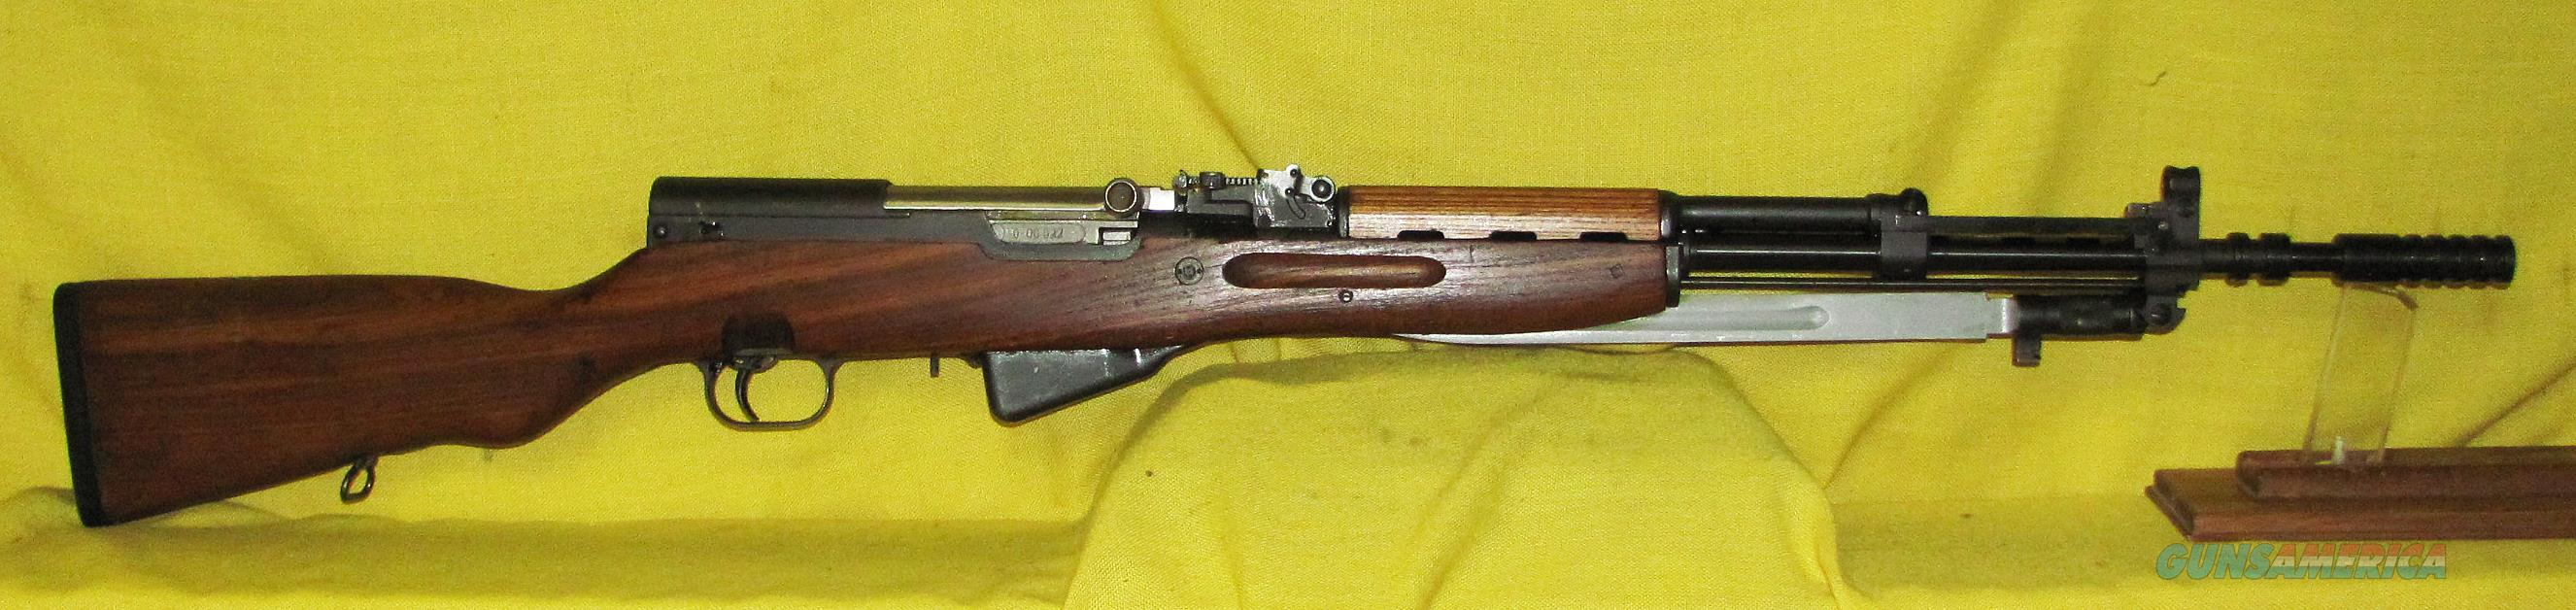 YUGOSLAVIAN M59/66  Guns > Rifles > SKS Rifles